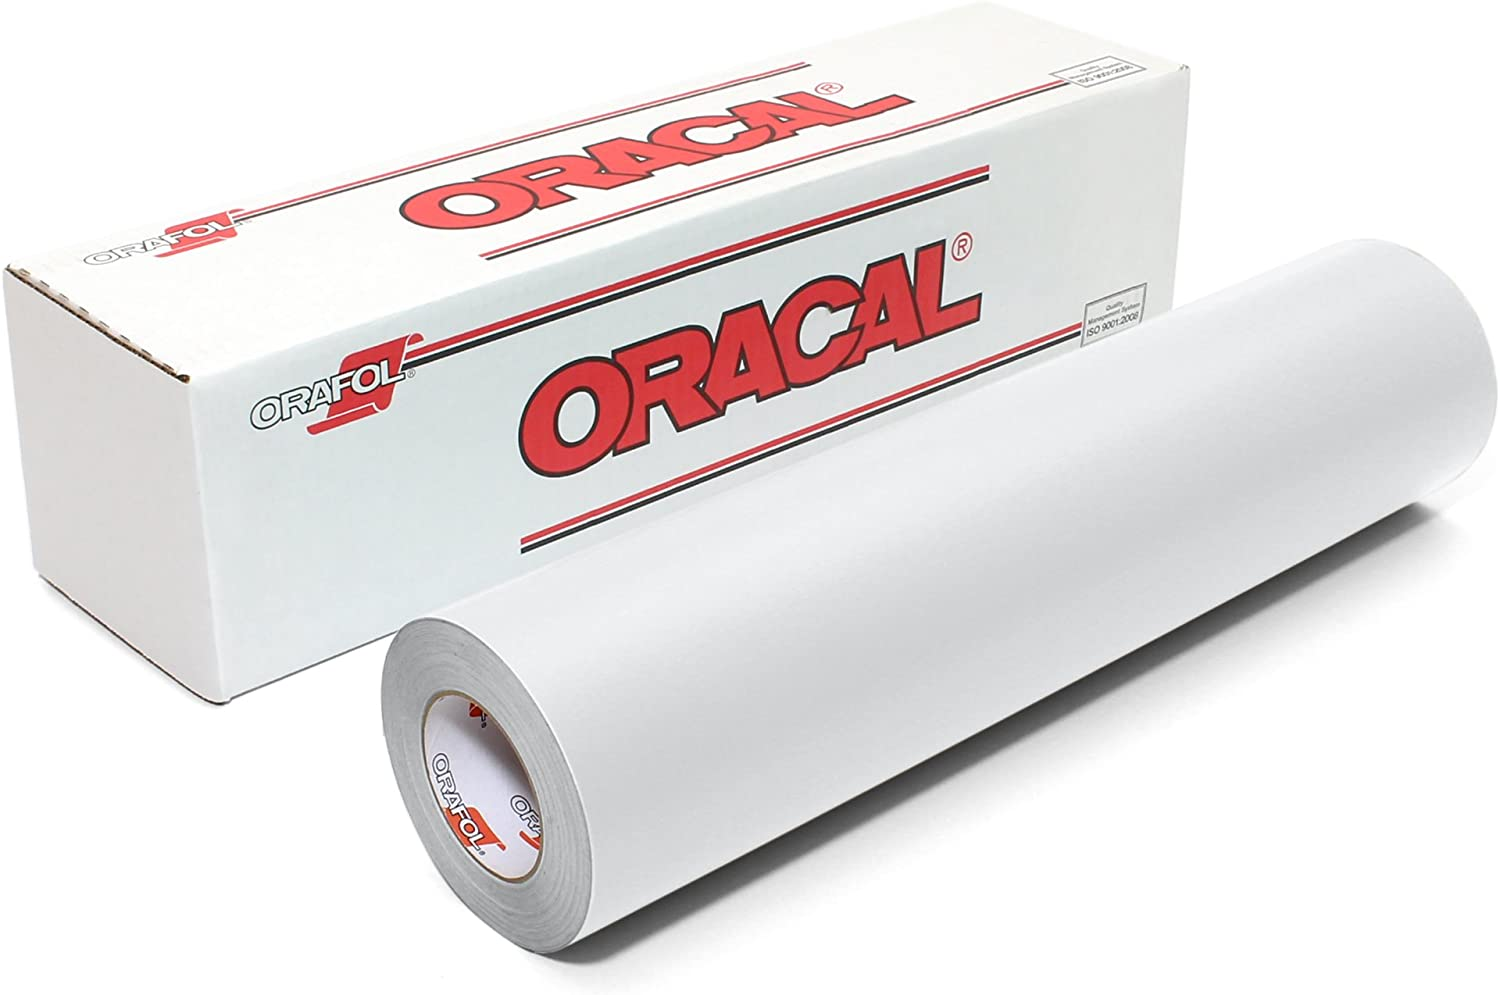 Oracal 631 Matte Vinyl Roll 24 Inches by 150 Feet White